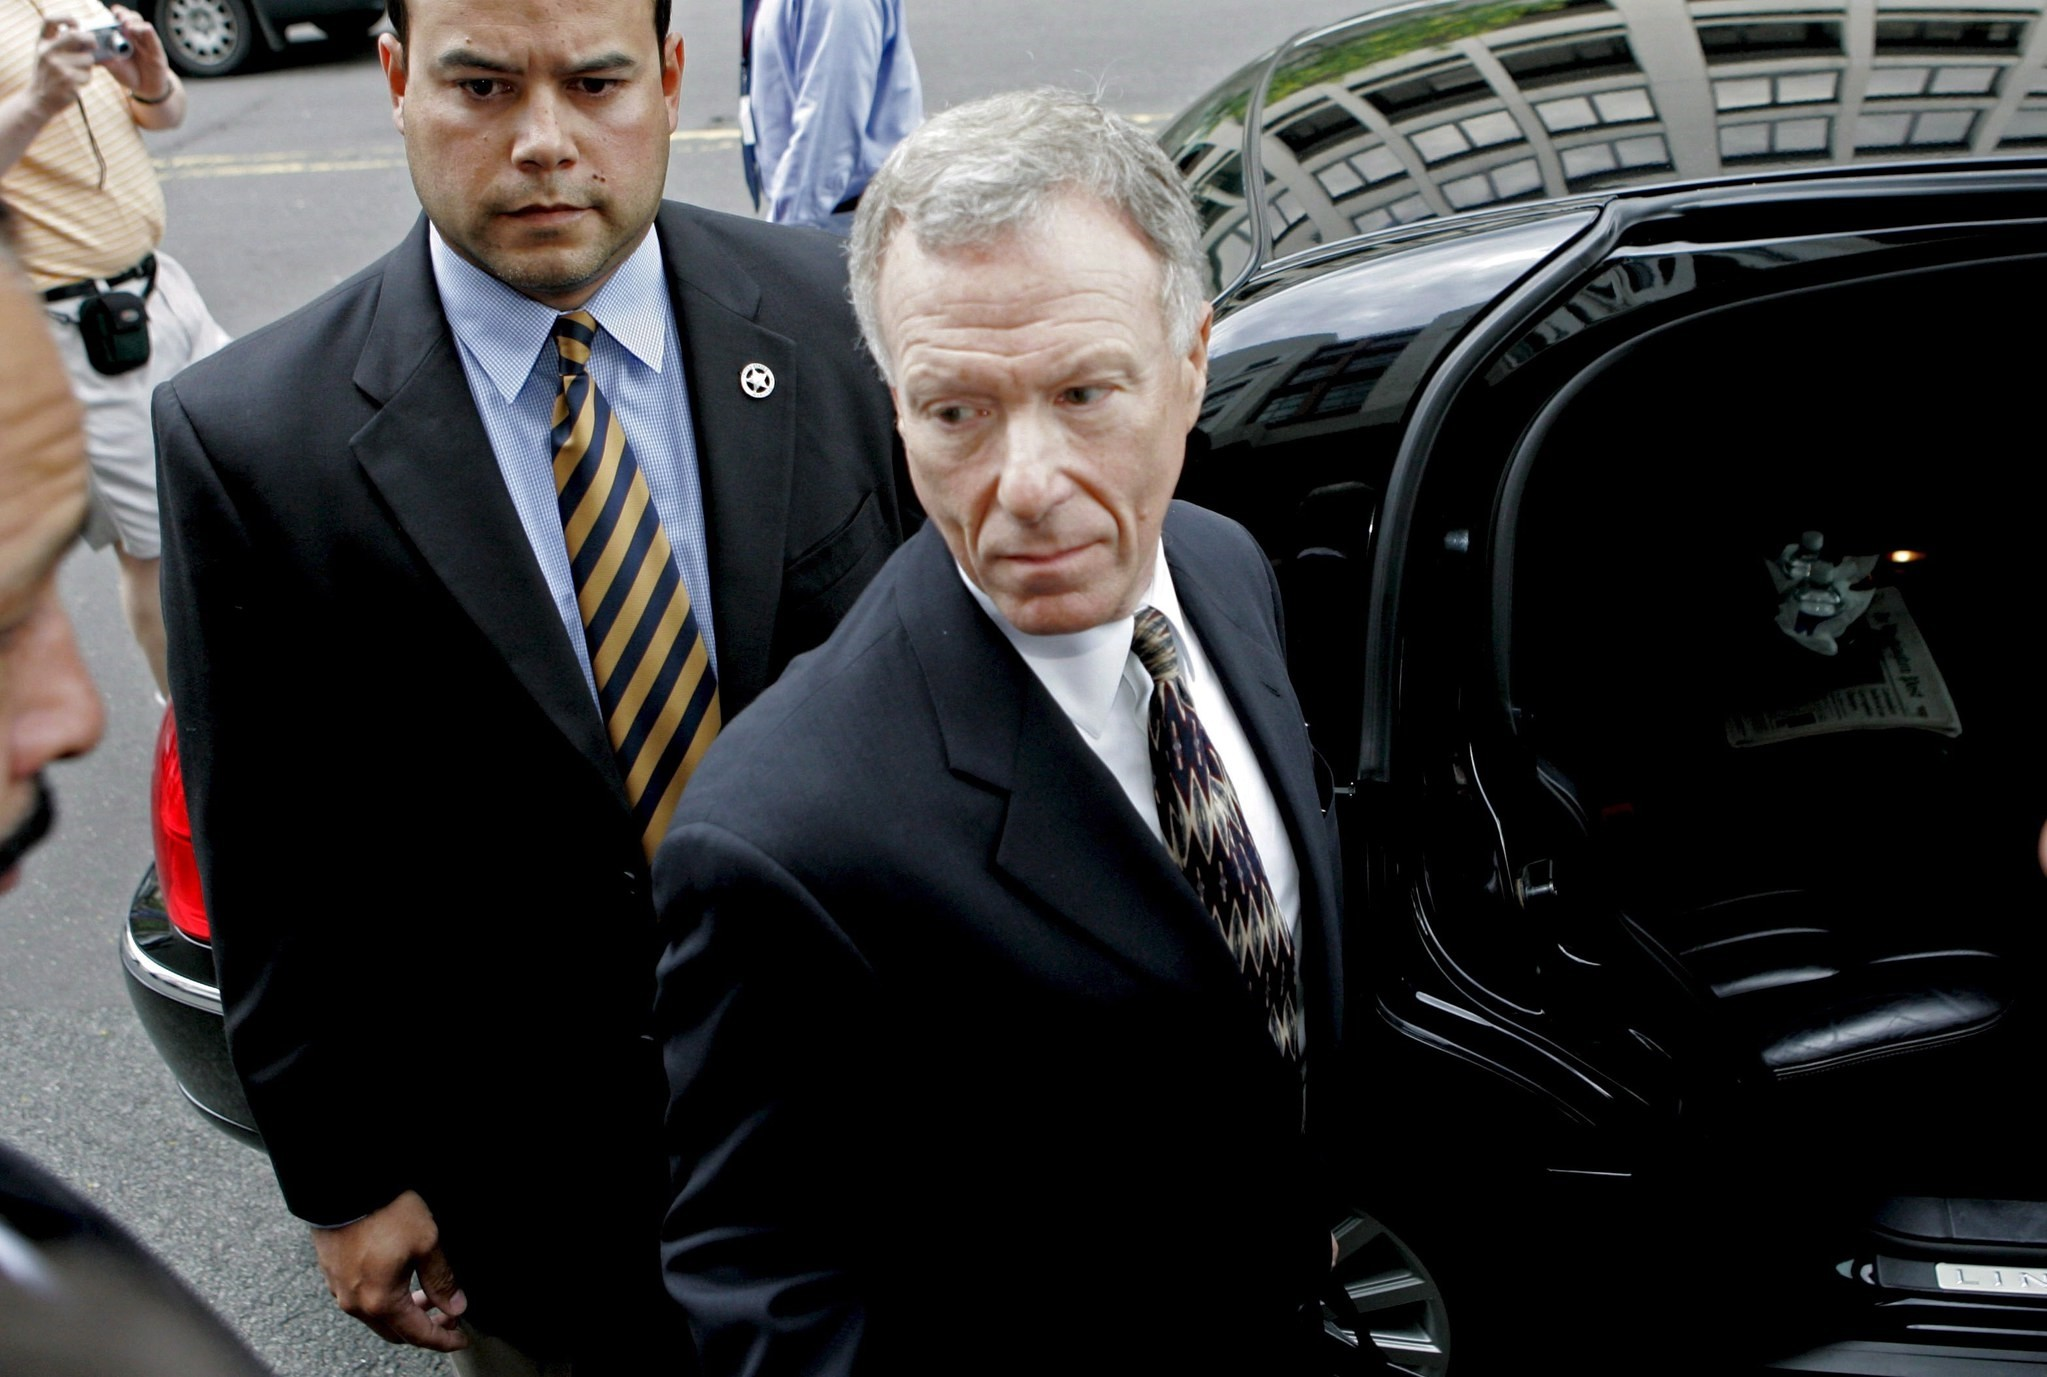 A file picture dated 05 June 2006 shows I. 'Scooter' Lewis Libby, former chief of staff to U.S. Vice President Dick Cheney, depart federal court in Washington, D.C., USA (reissued 13 April 2018).